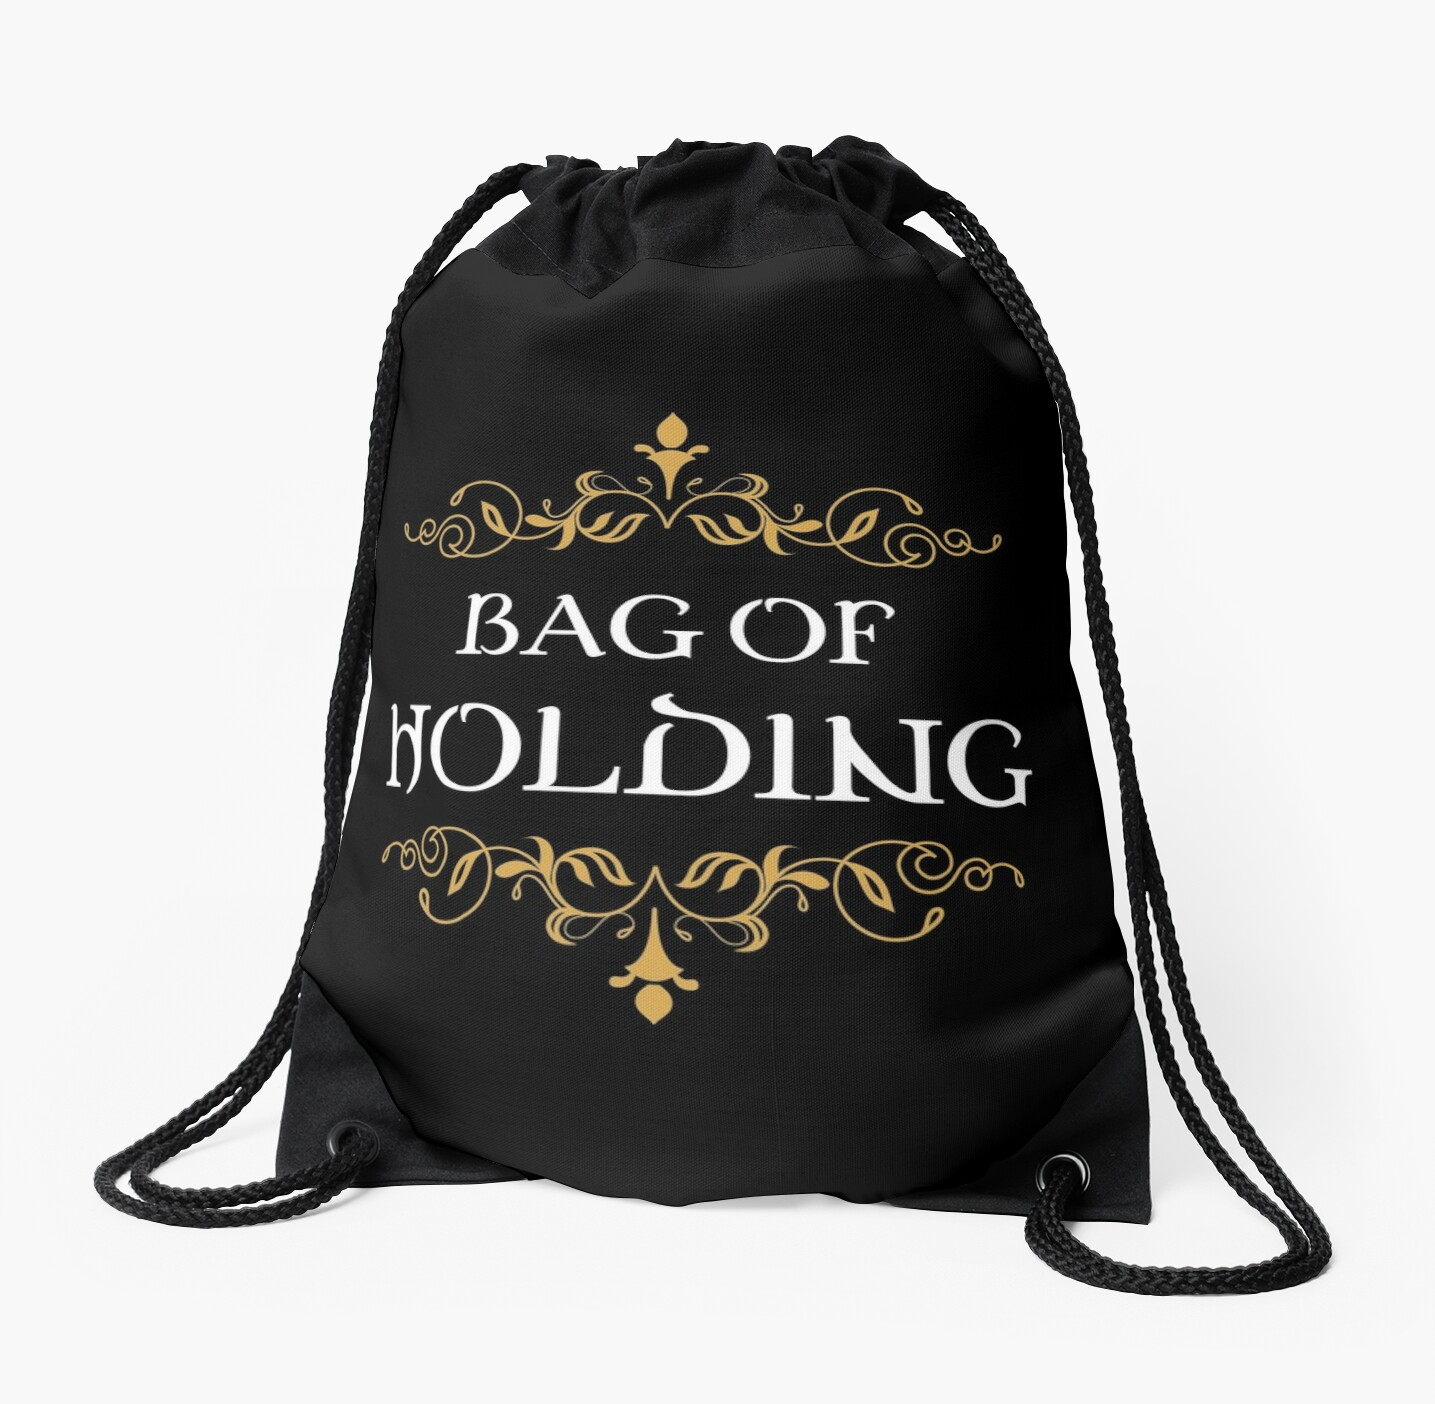 Bag of Holding Dungeons Crawler and Dragons Slayer Inspired by pixeptional